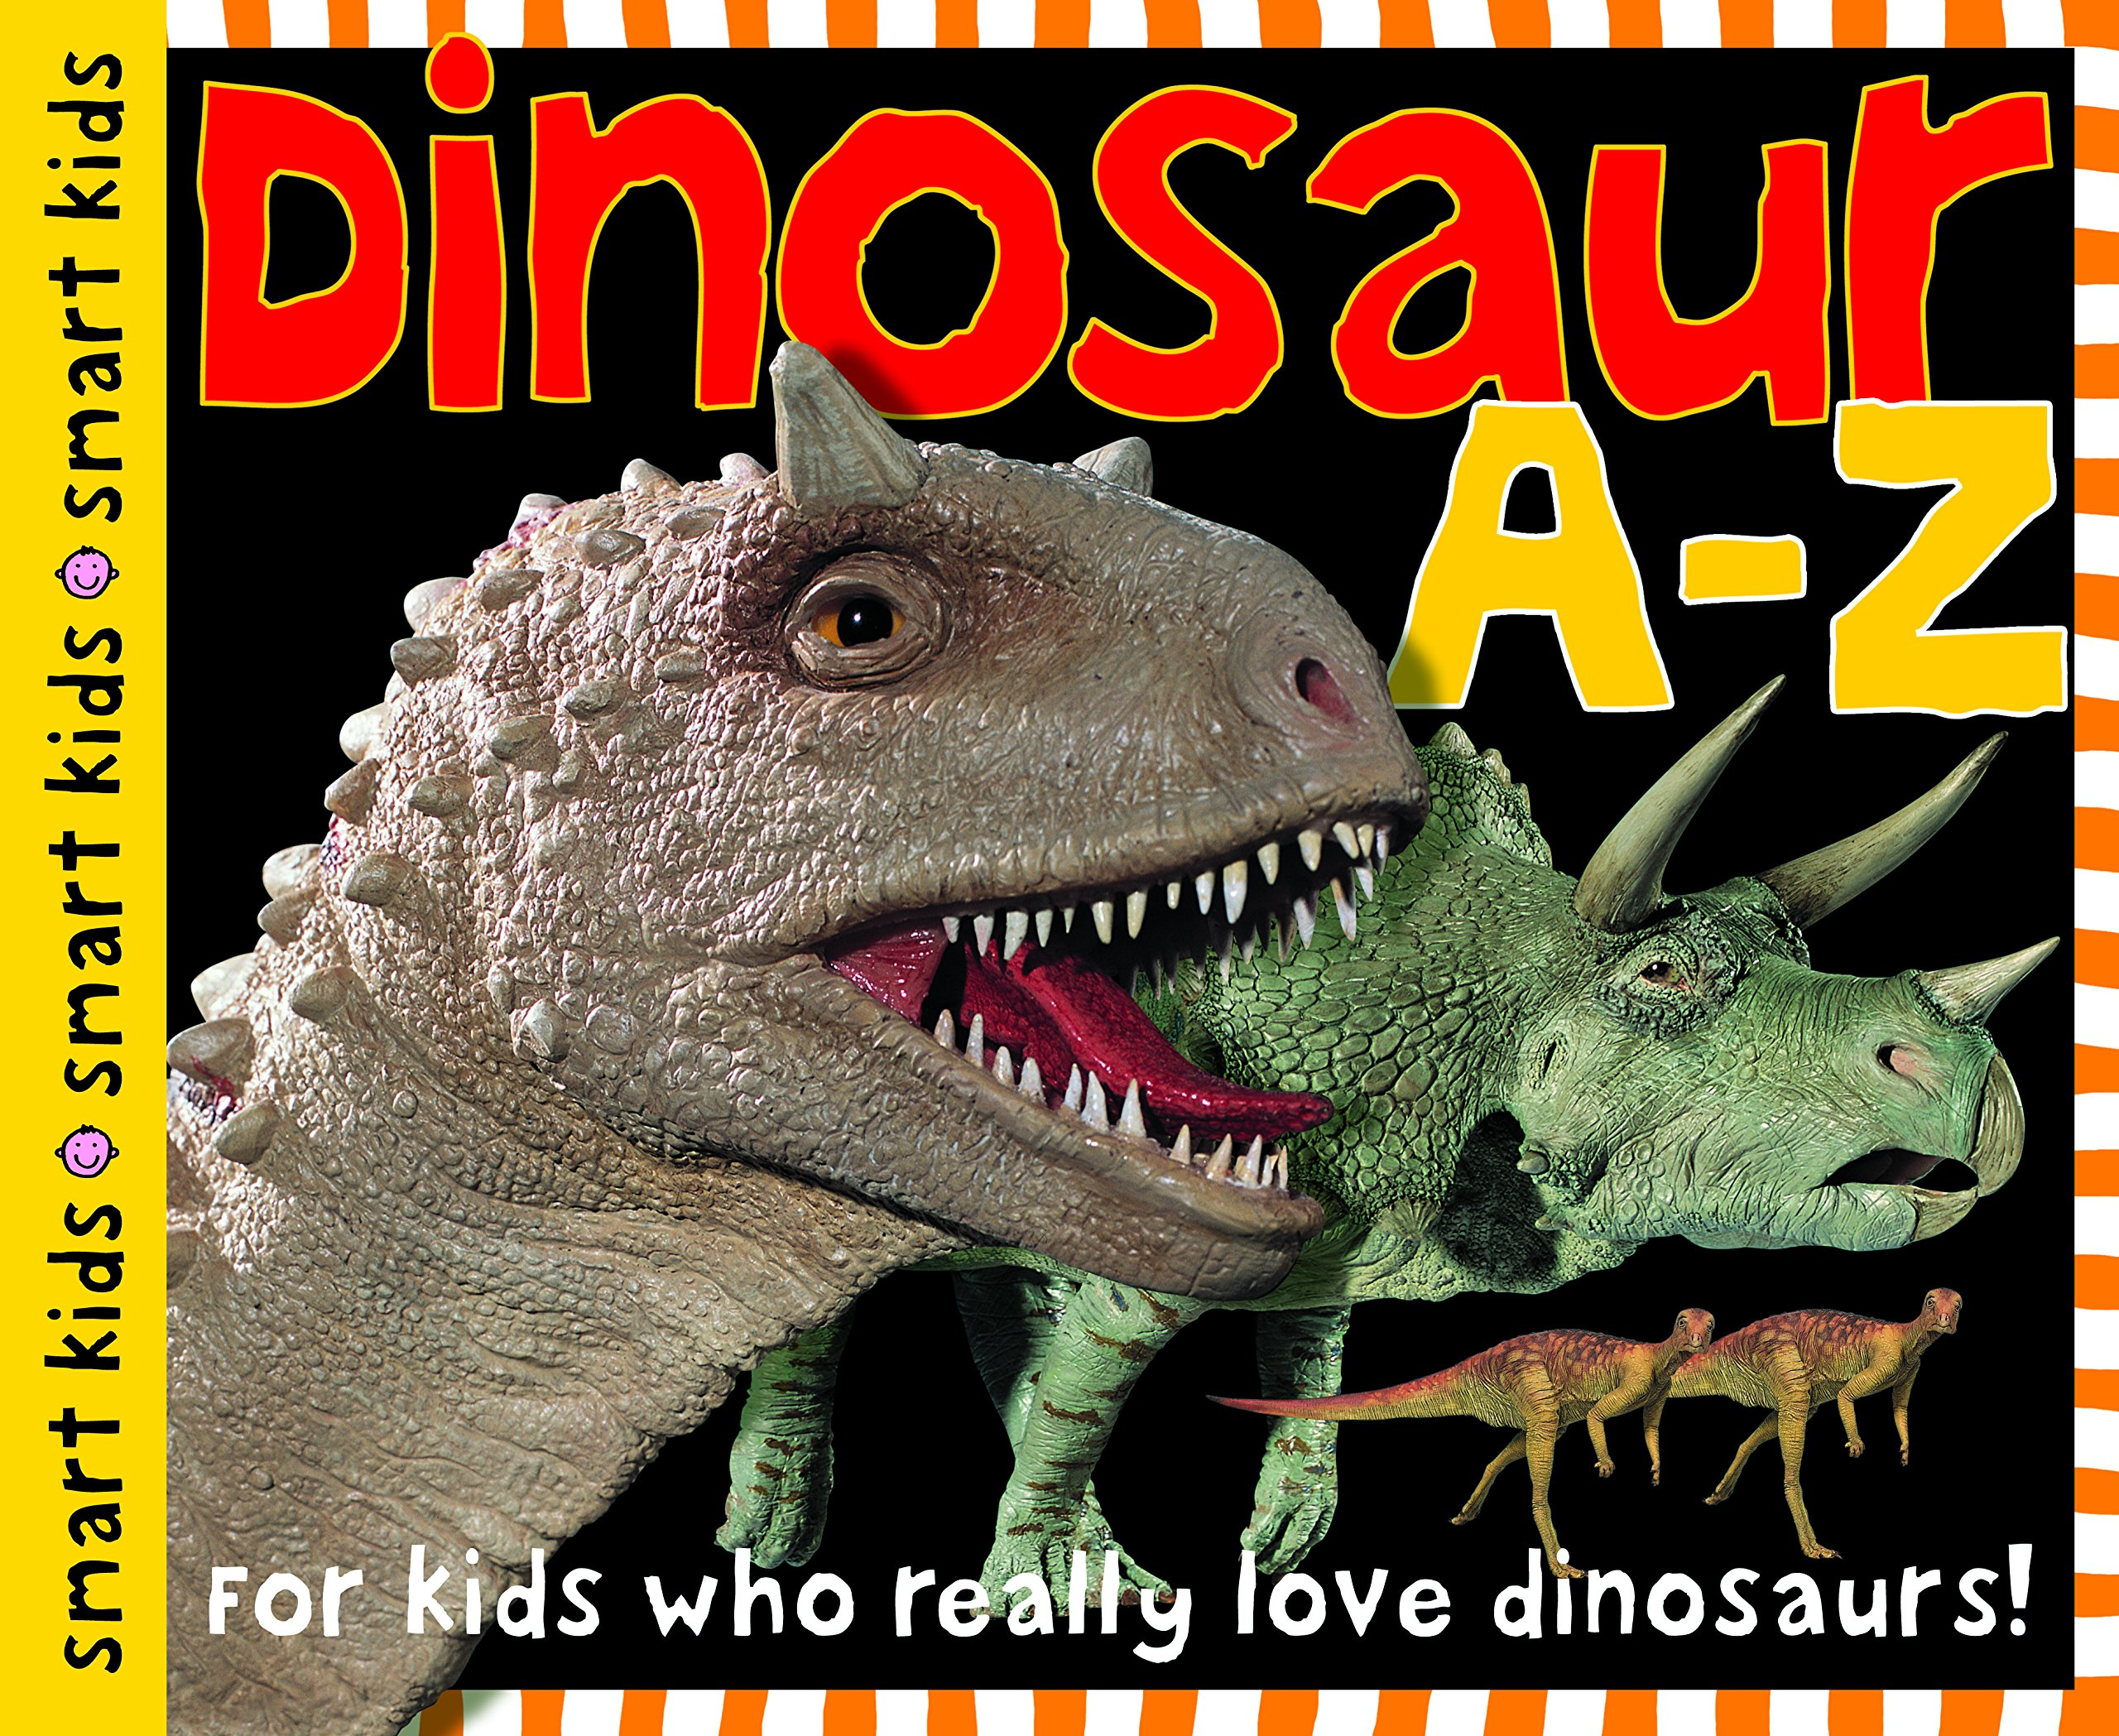 Dinosaur A-Z Hardcover Book ONLY $5.23 (Reg. $10)